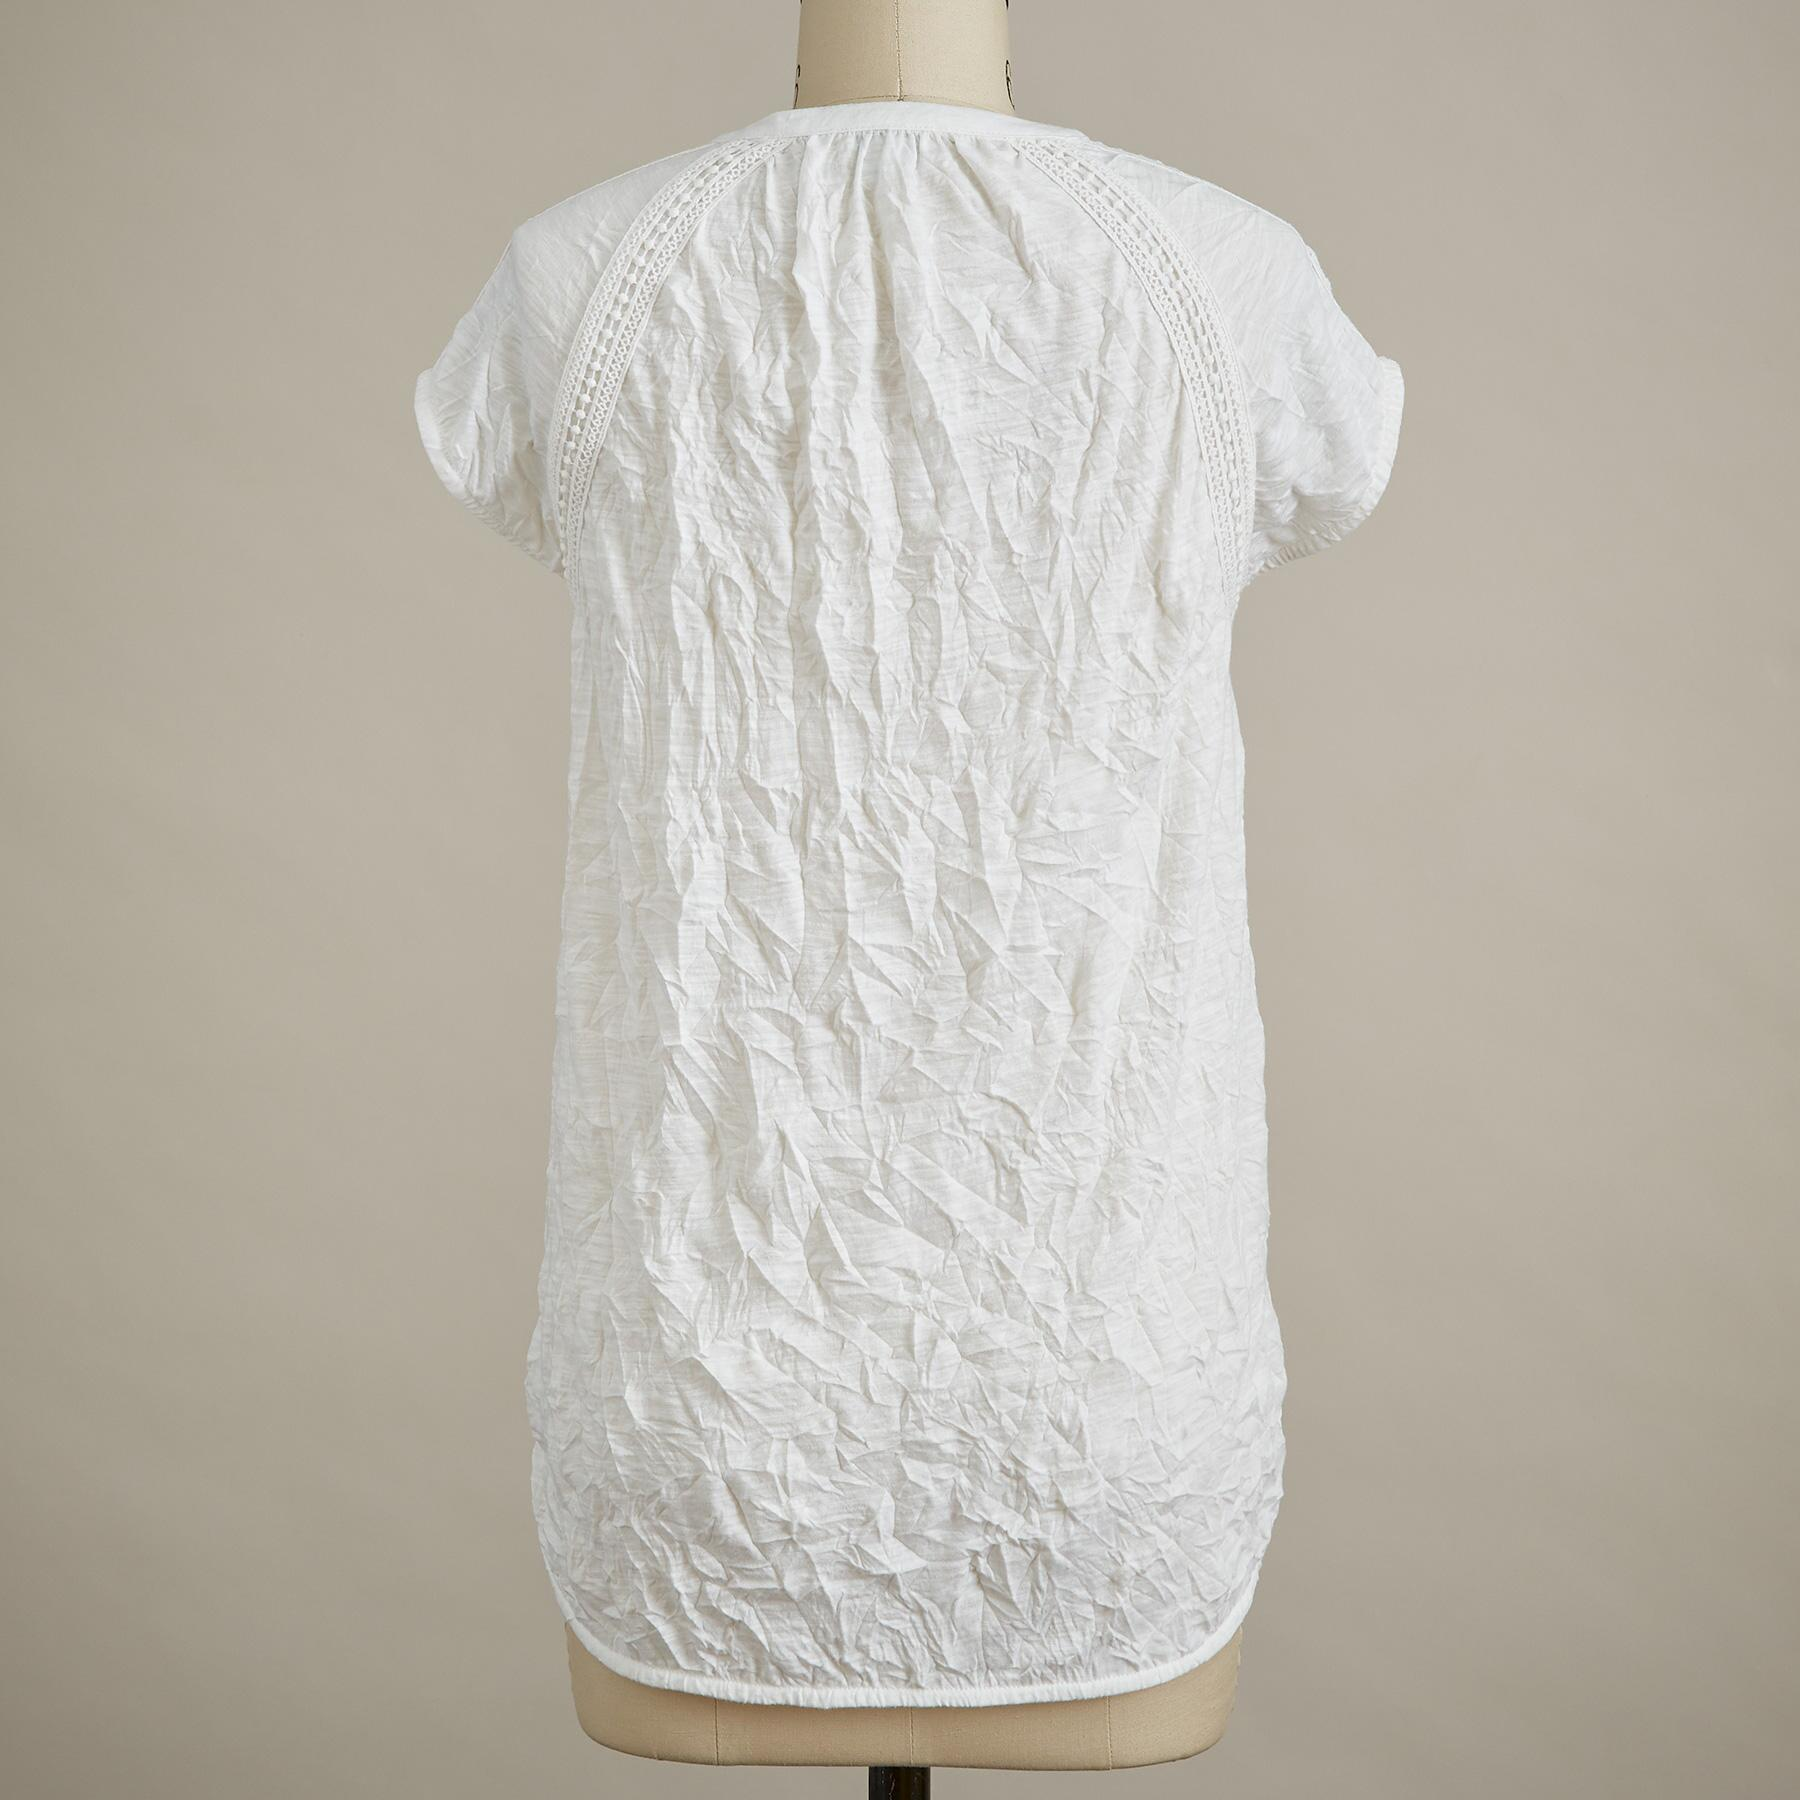 ROMANCE TEXTURED SHORT-SLEEVE TEE - PETITE: View 3